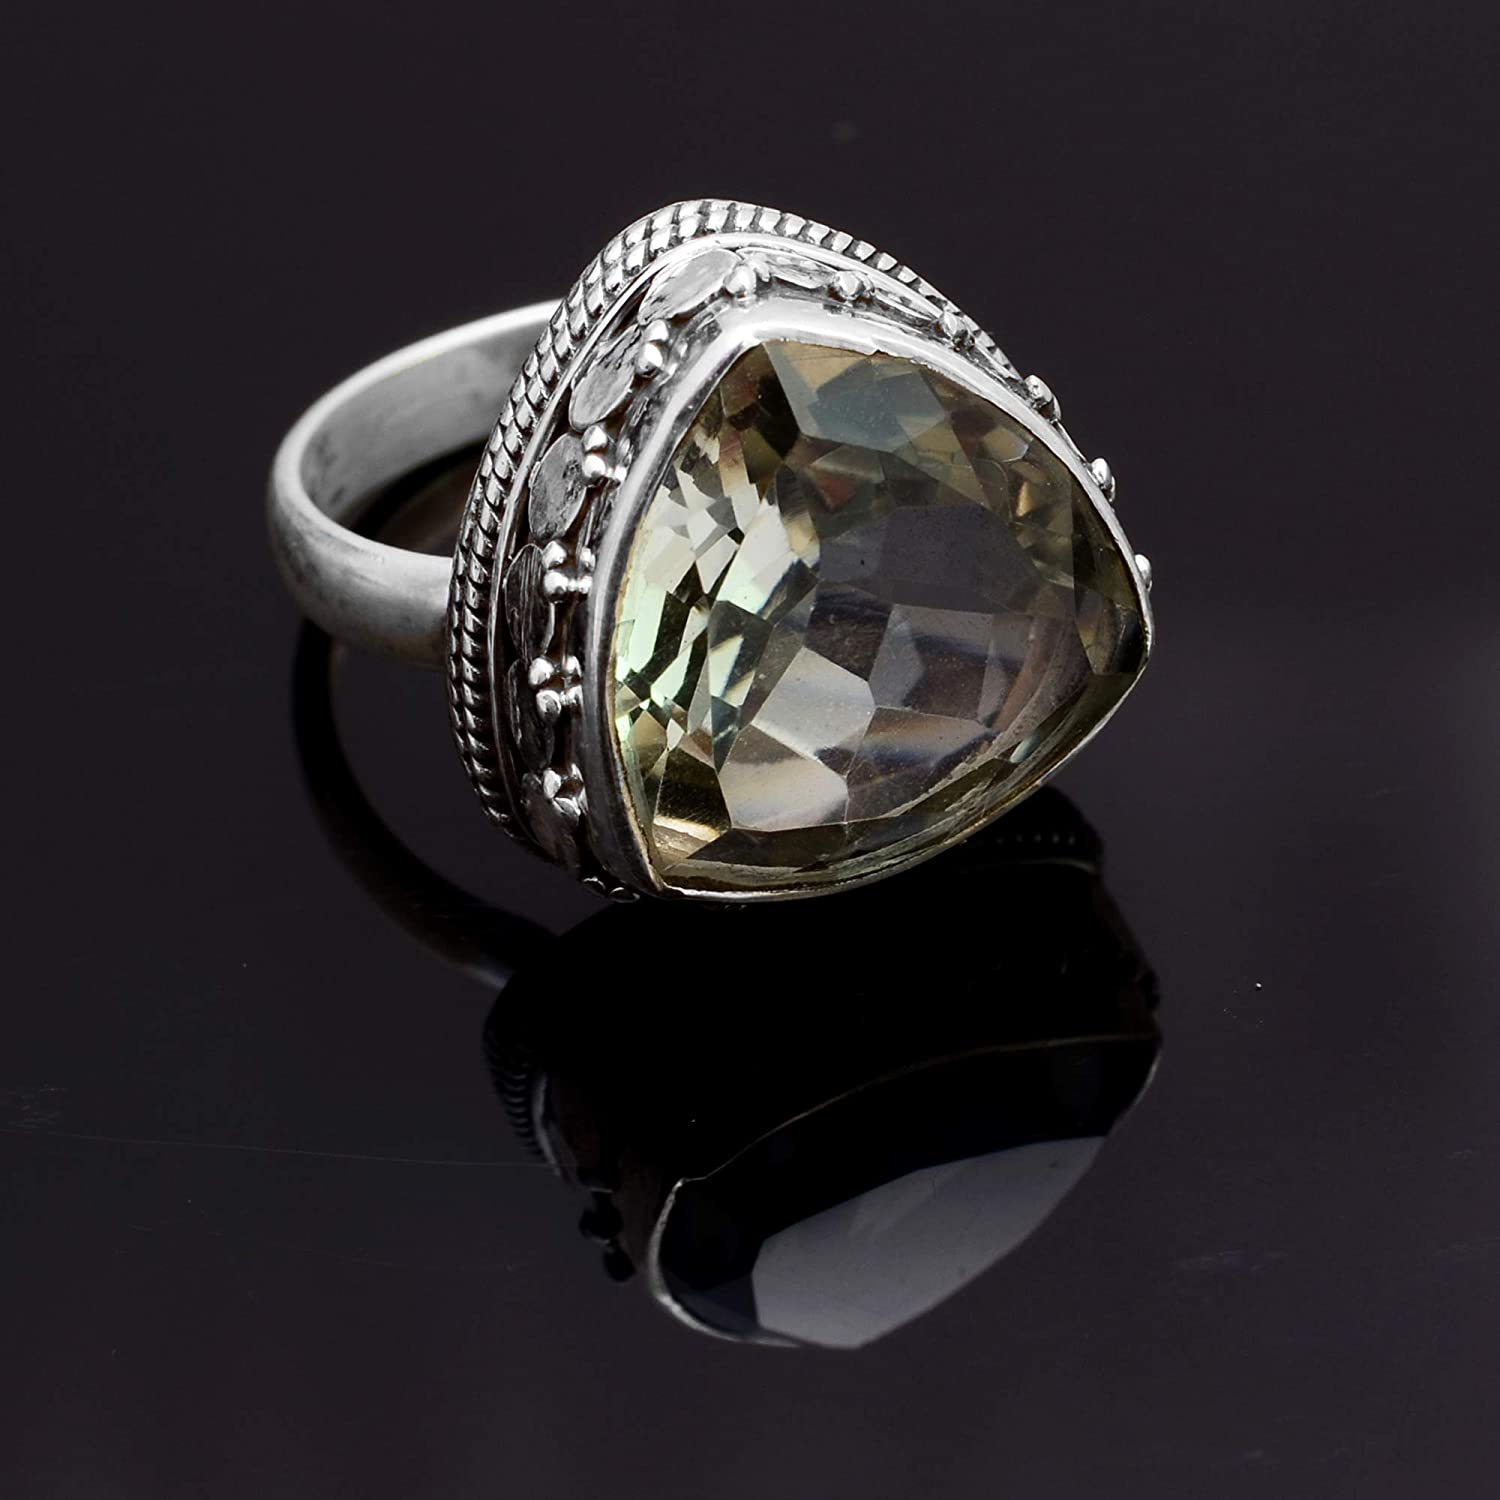 Silver Palace 925 Sterling Silver Natural Green Amethyst Ring for Womens and Girls